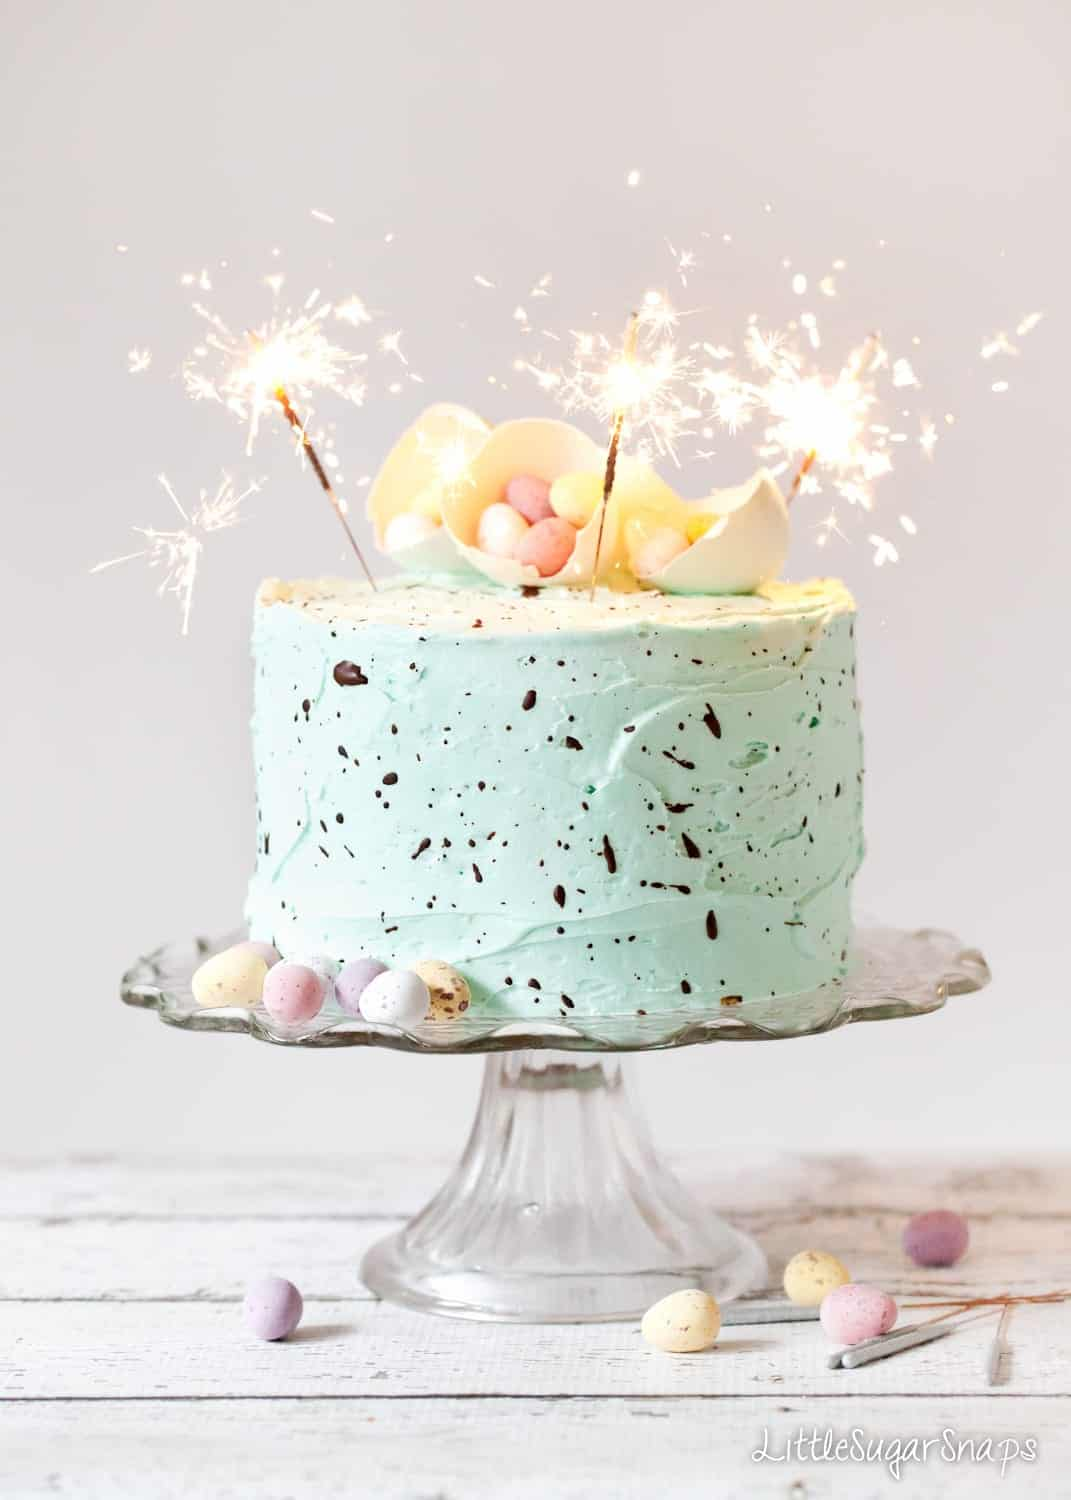 Speckle Cake - White Chocolate Peppermint Layer Cake